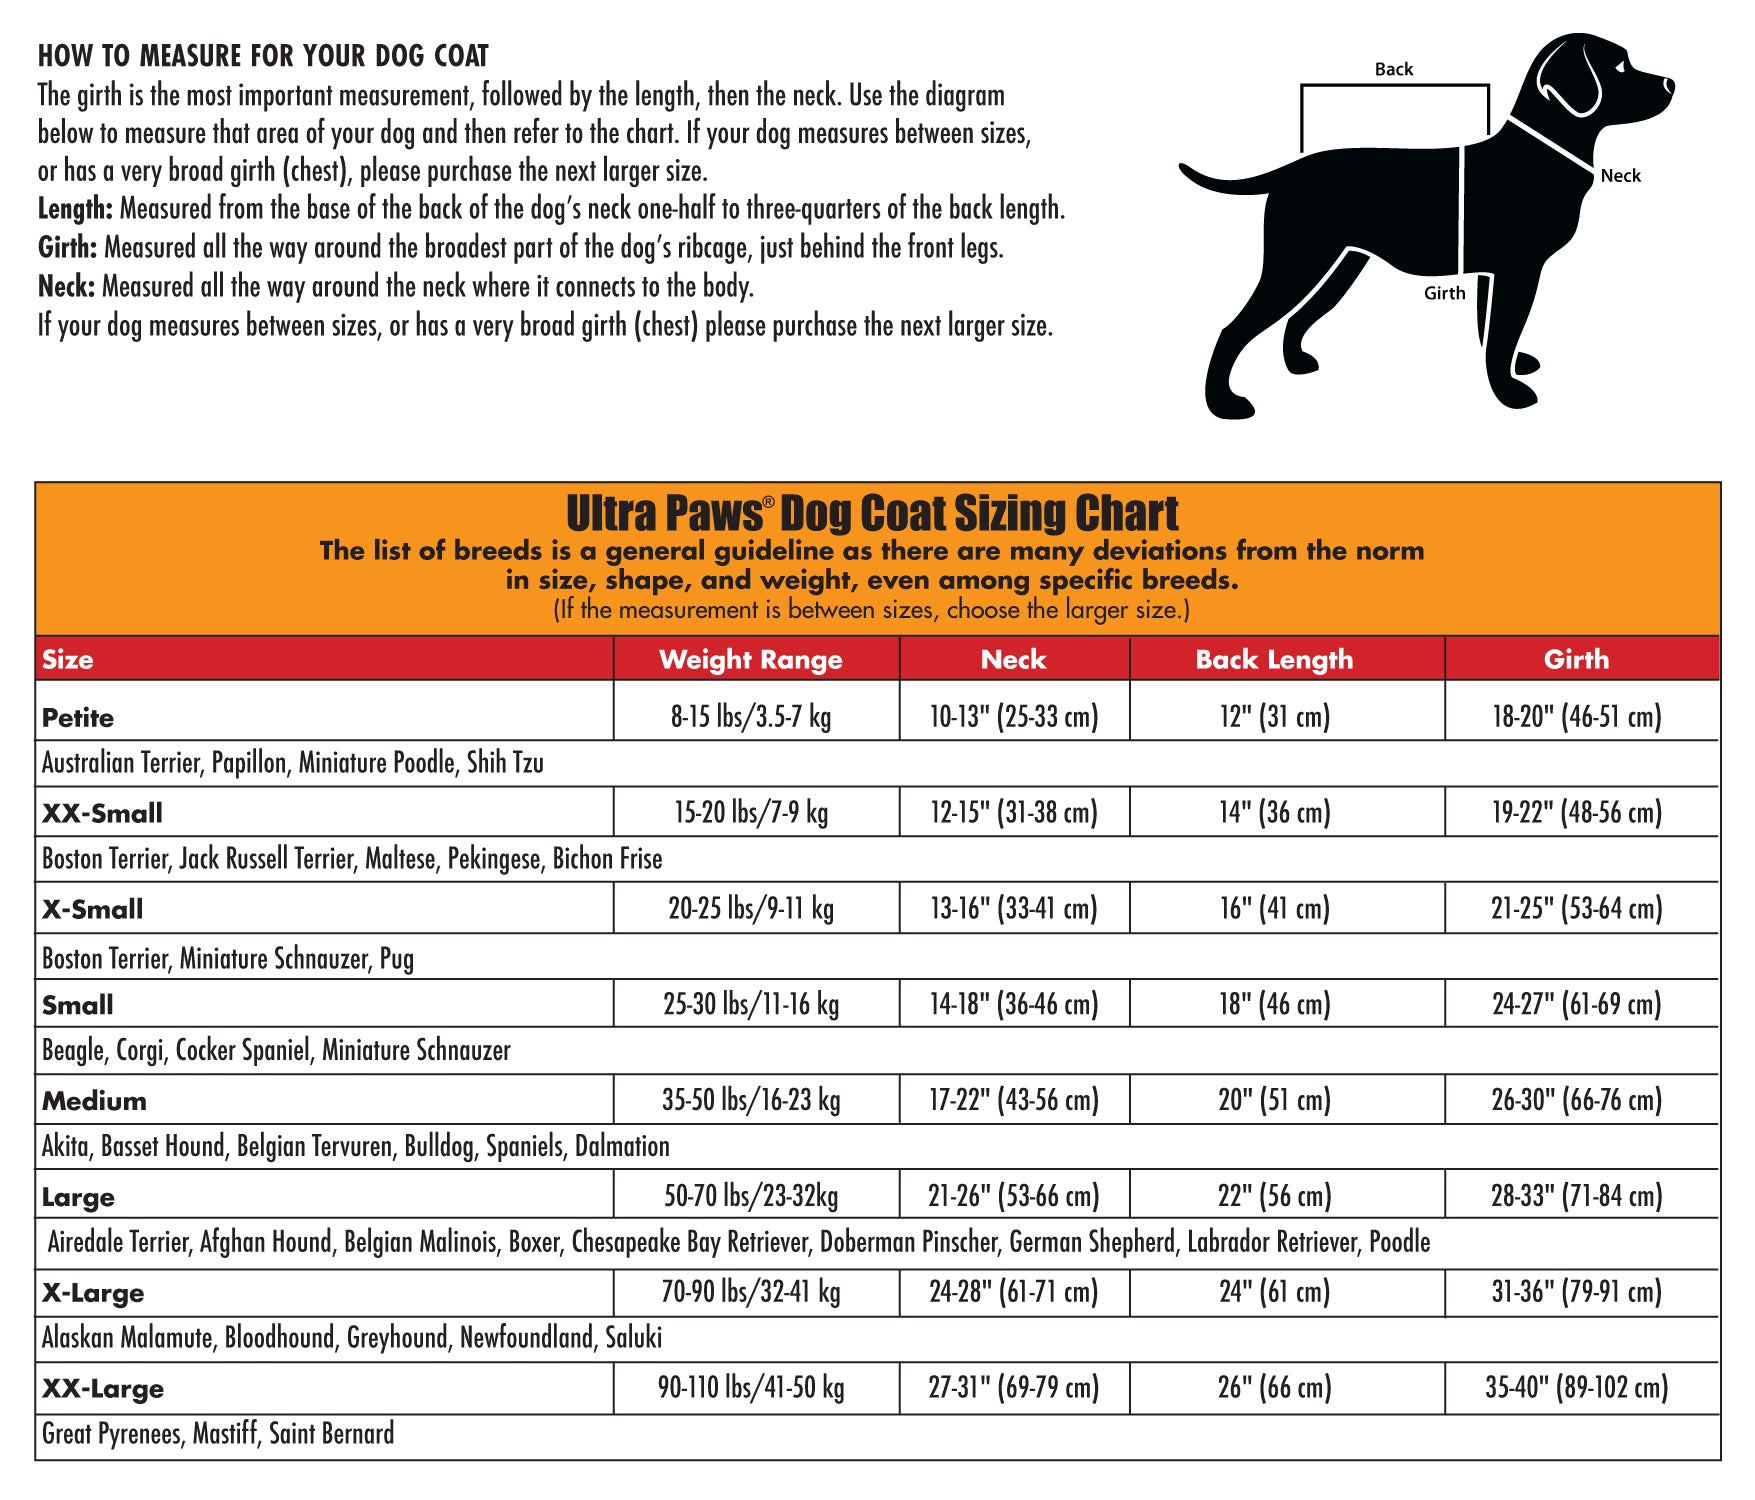 Ultra Paws Dog Coat Sizing Chart